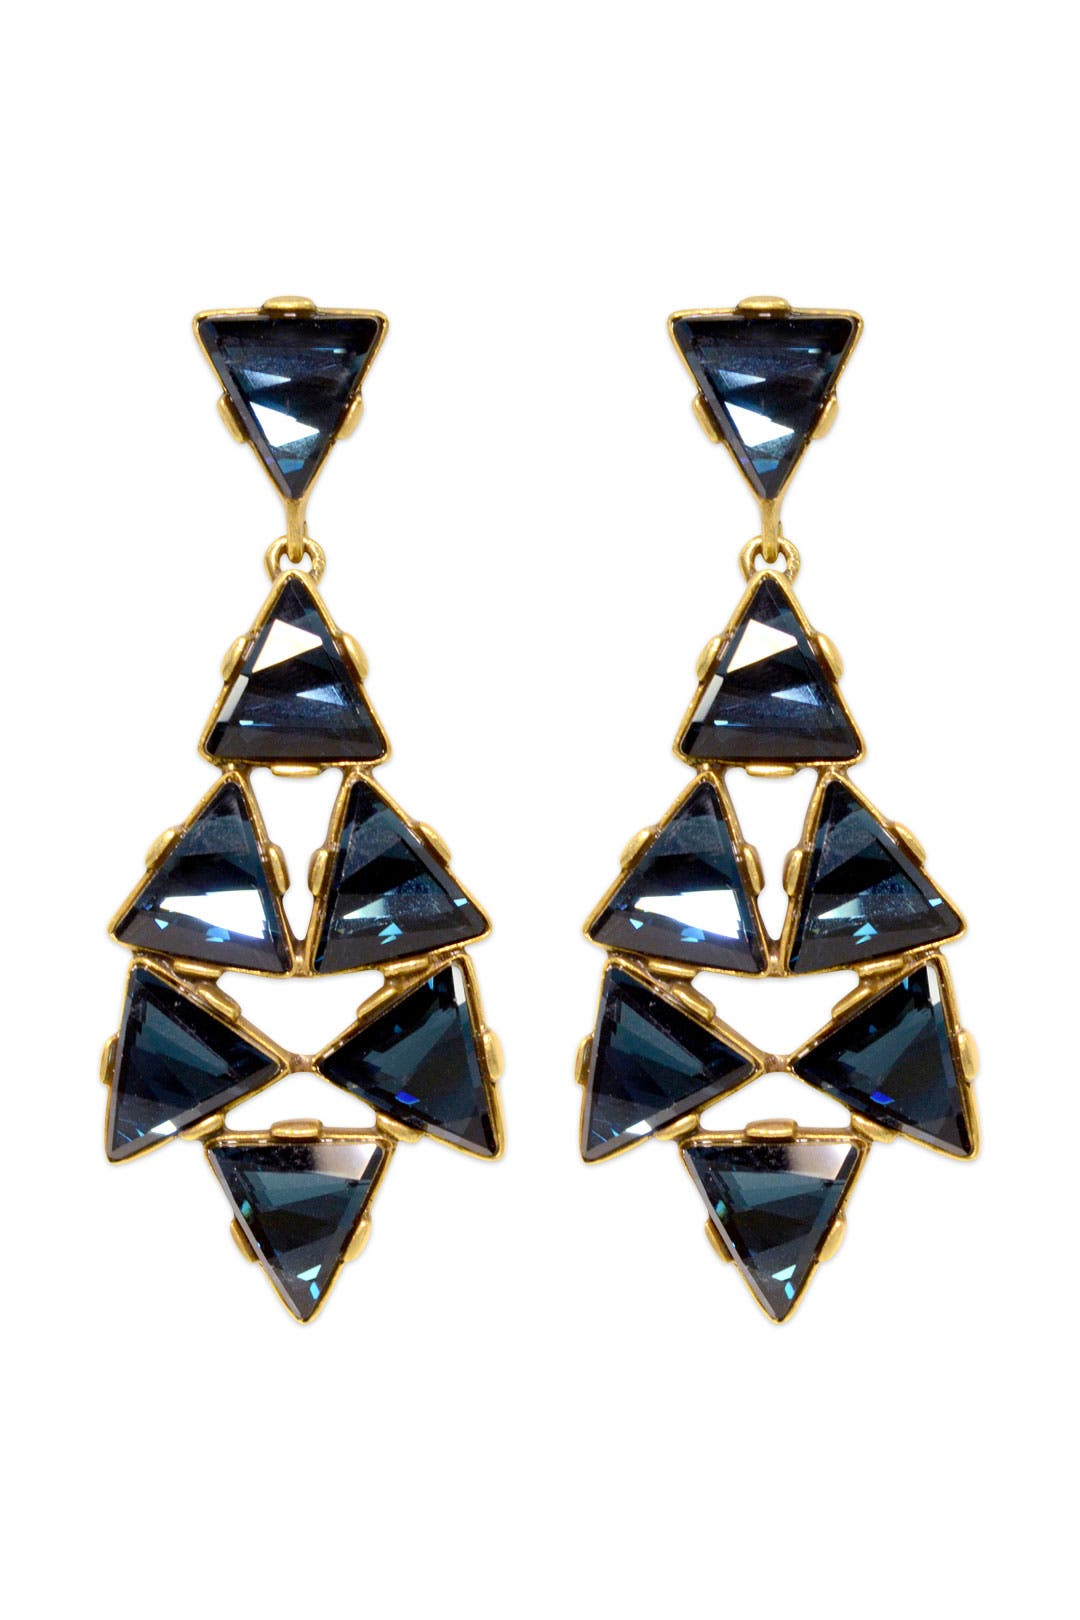 Into the Night Earrings by Oscar de la Renta